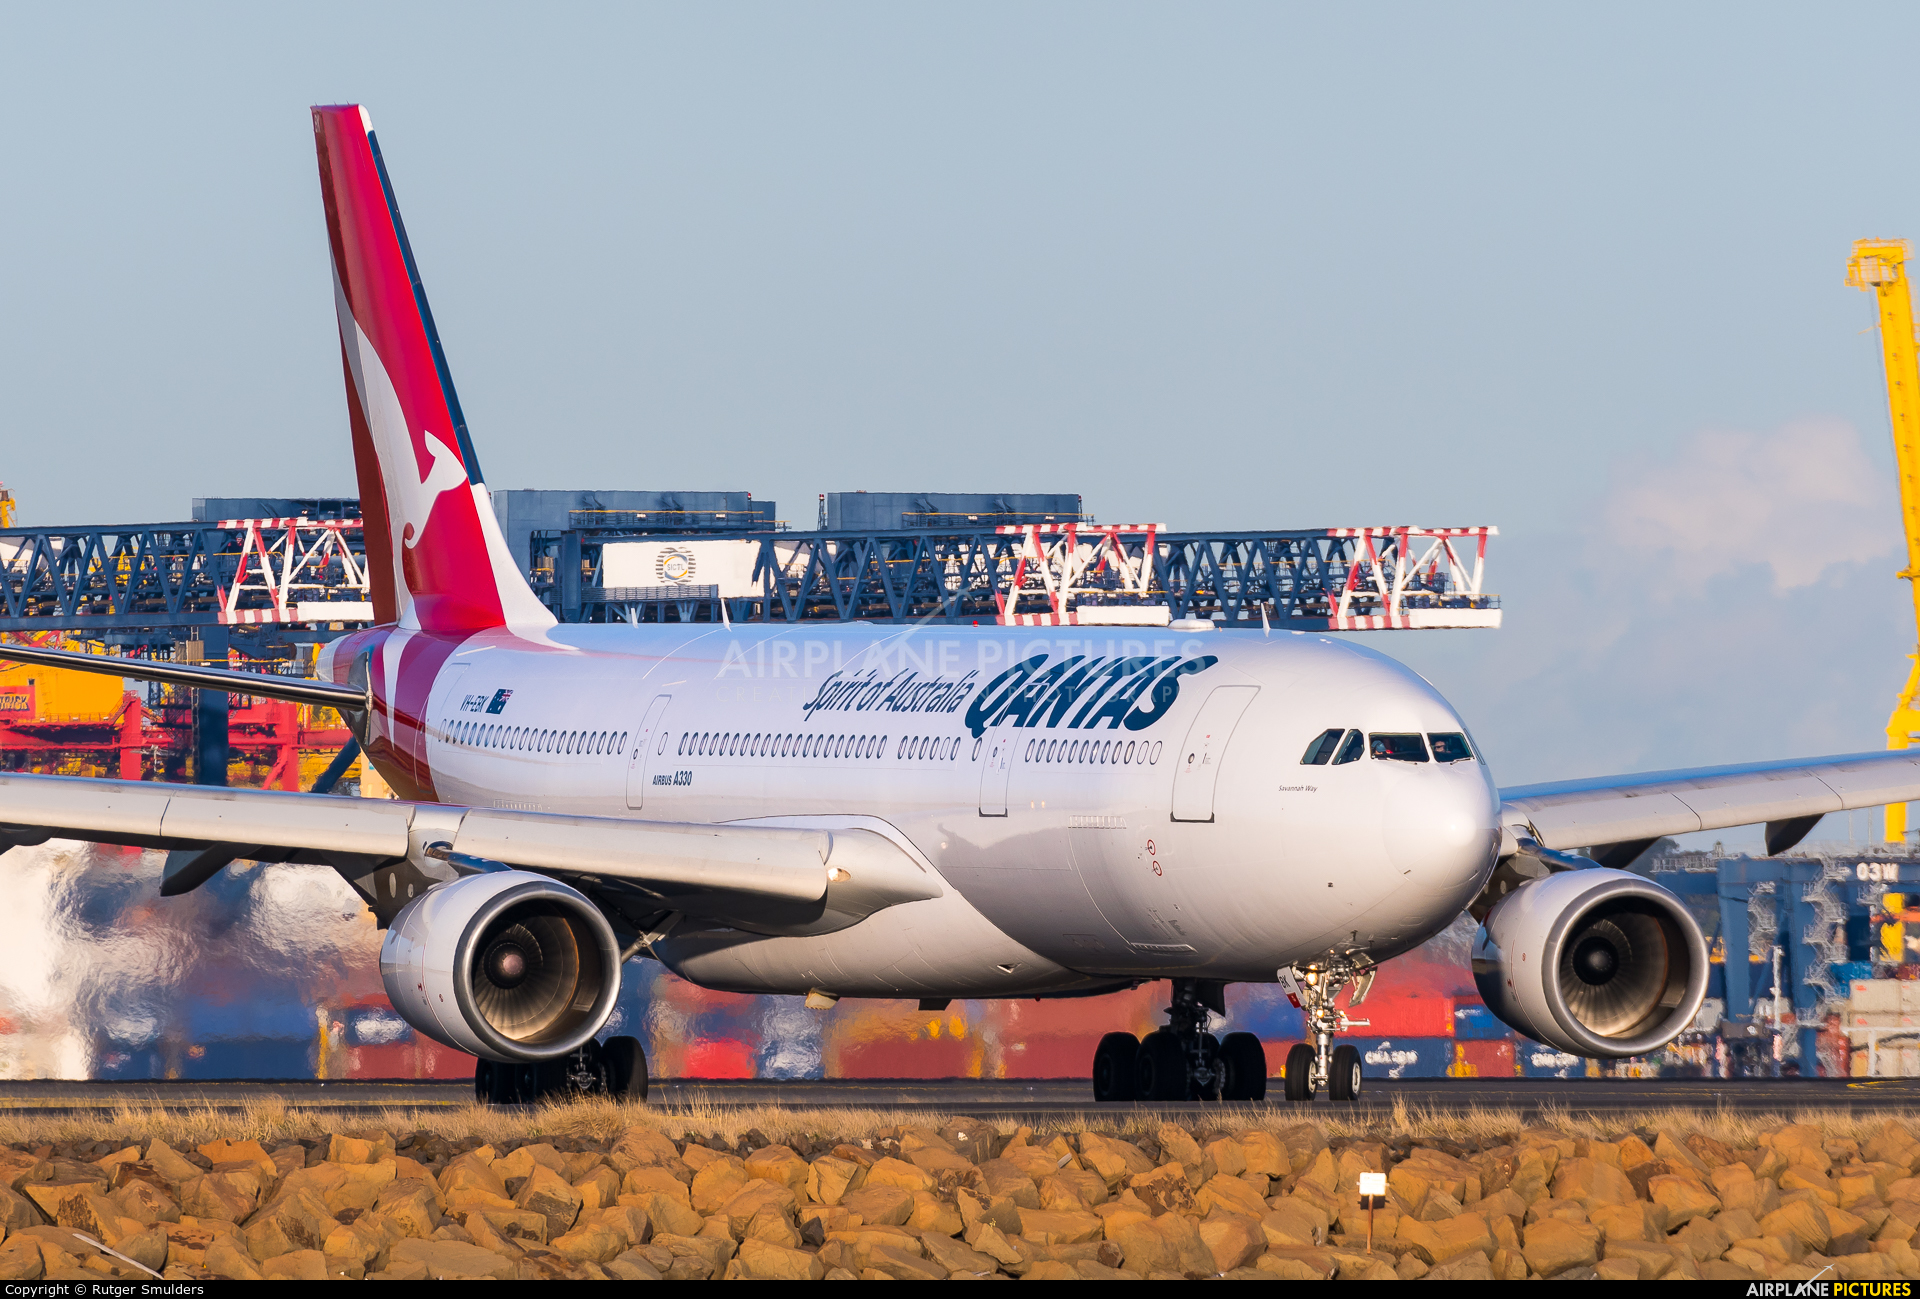 QANTAS VH-EBK aircraft at Sydney - Kingsford Smith Intl, NSW